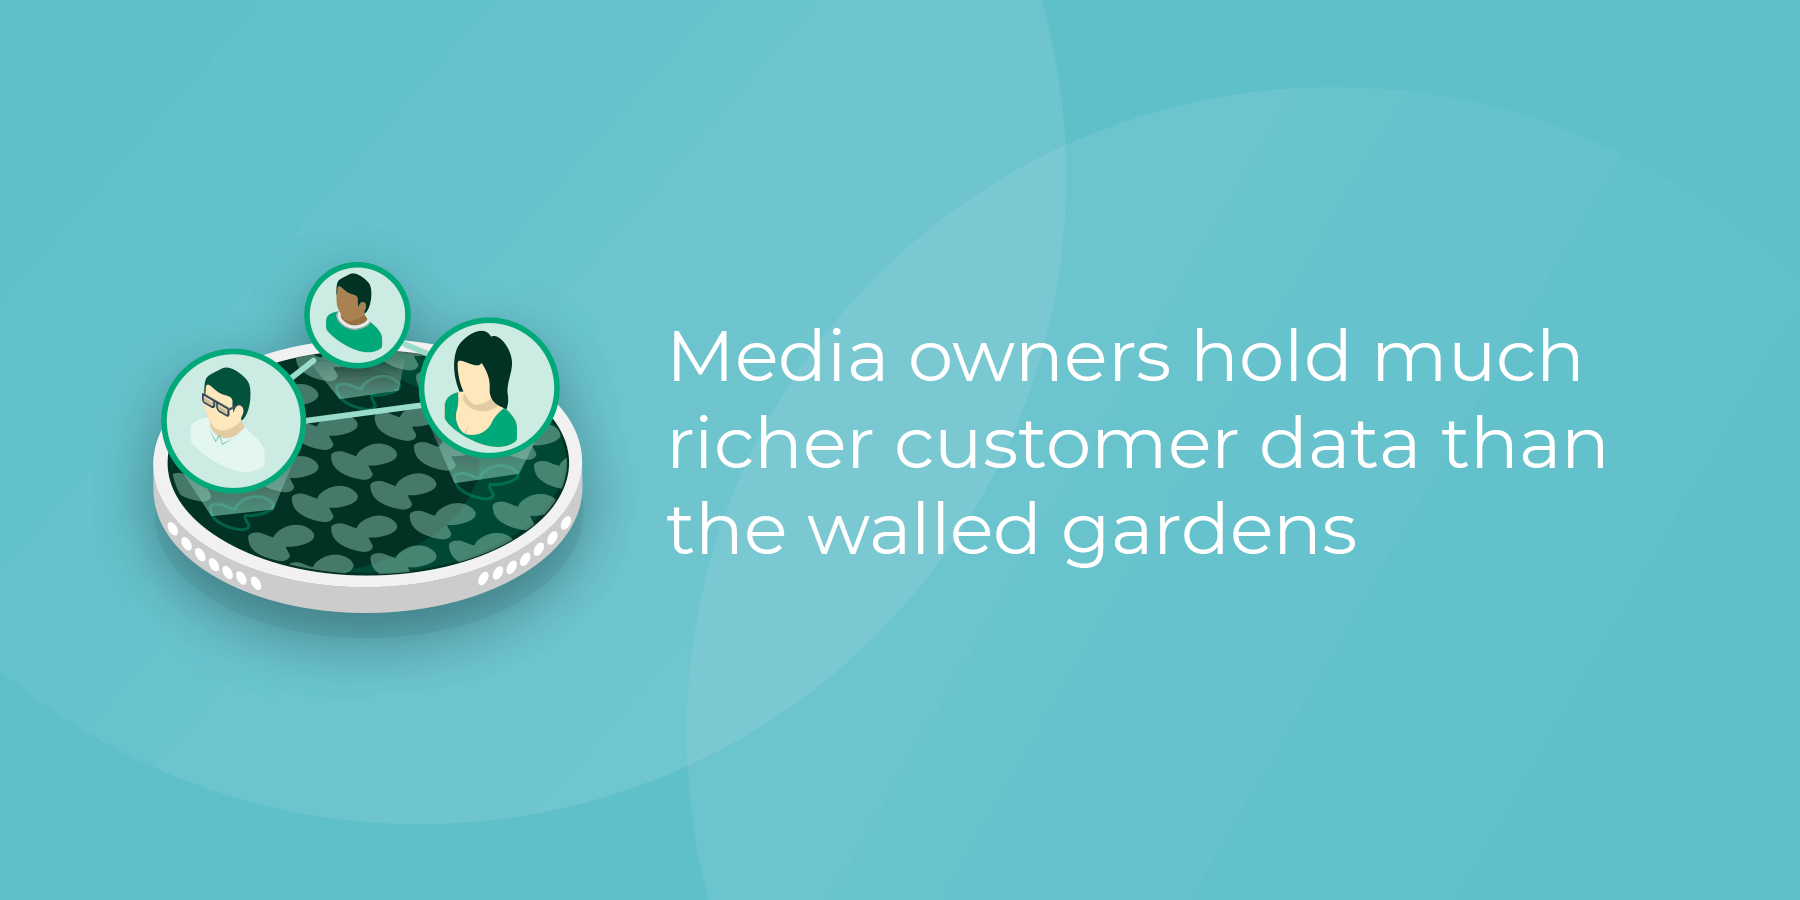 Media owners hold much richer customer data than the walled gardens